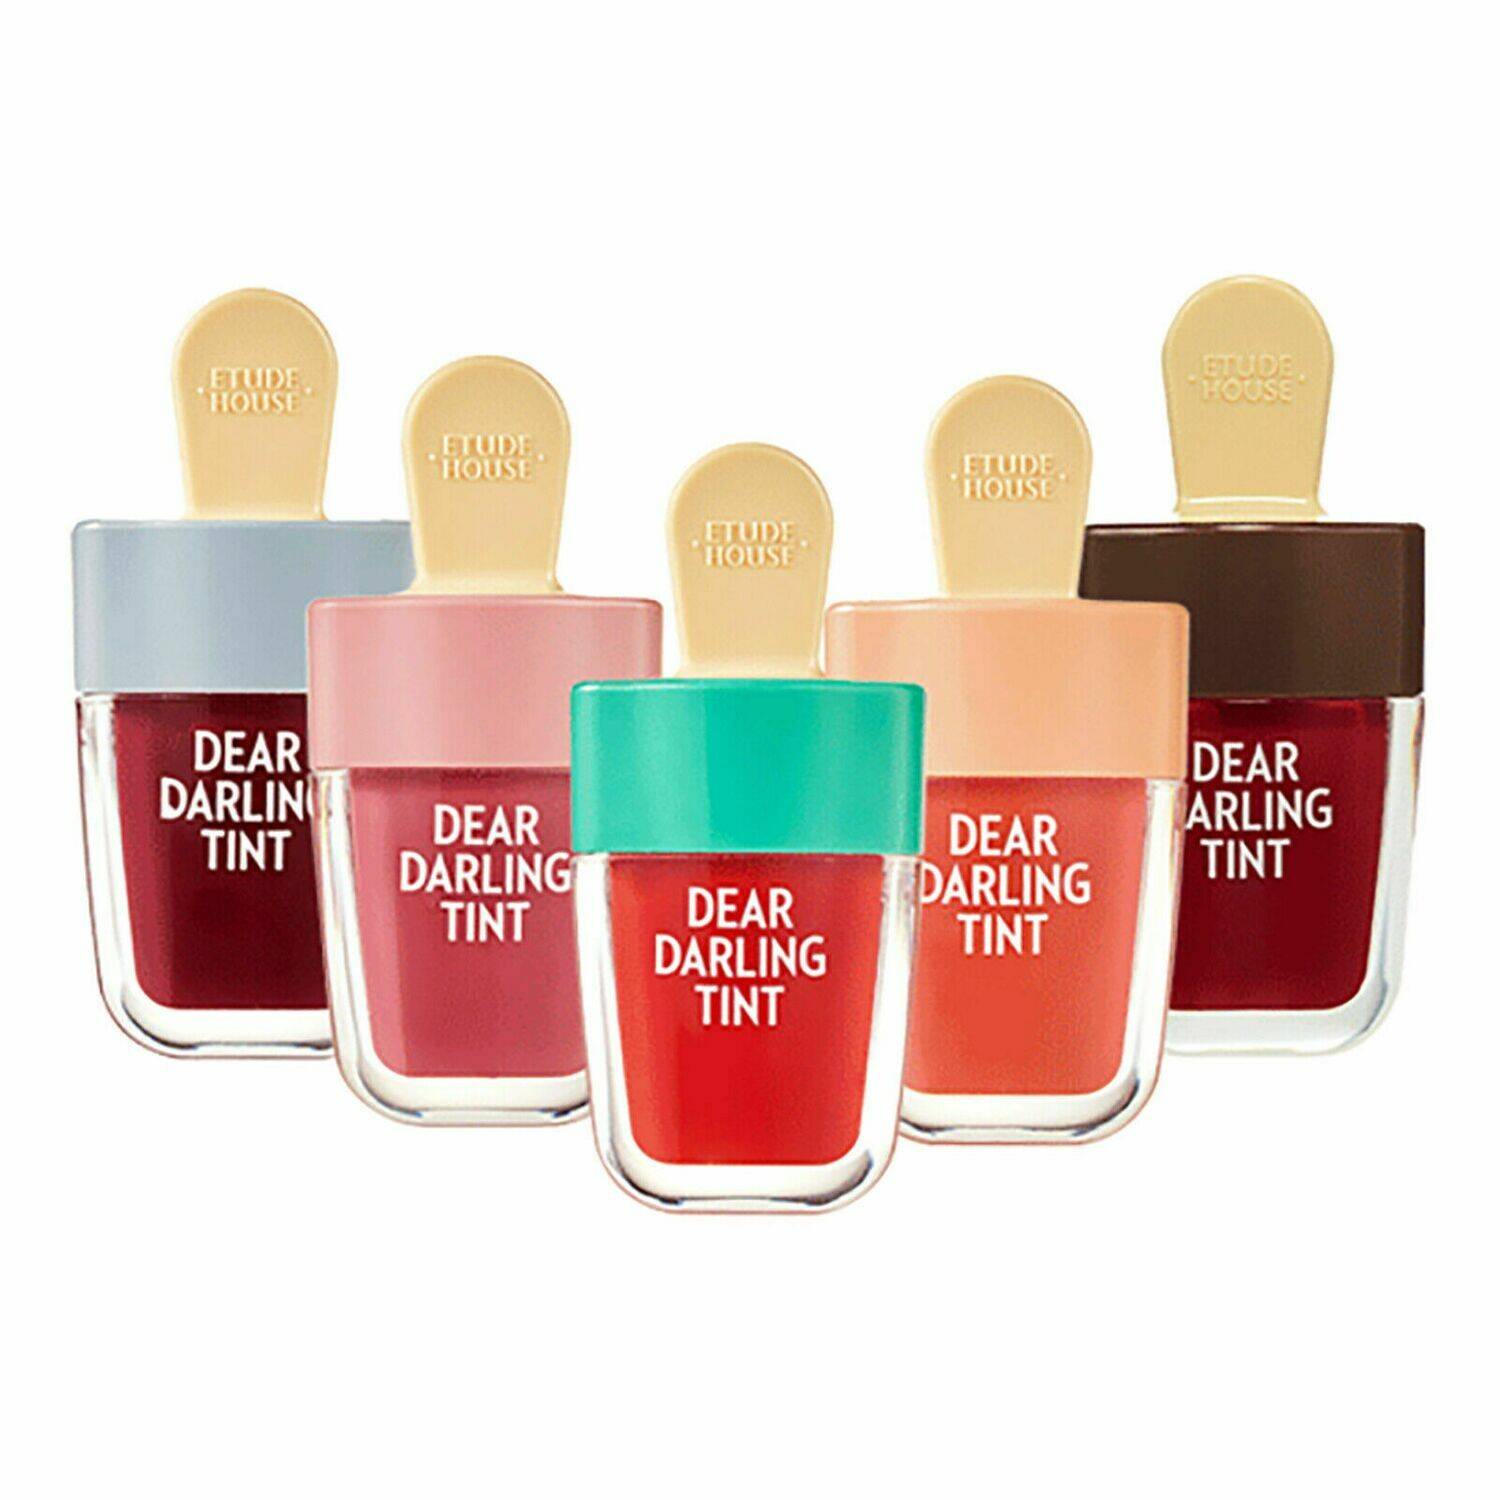 Etude House Dear Darling Water Gel Tint Ice Cream 4.5g